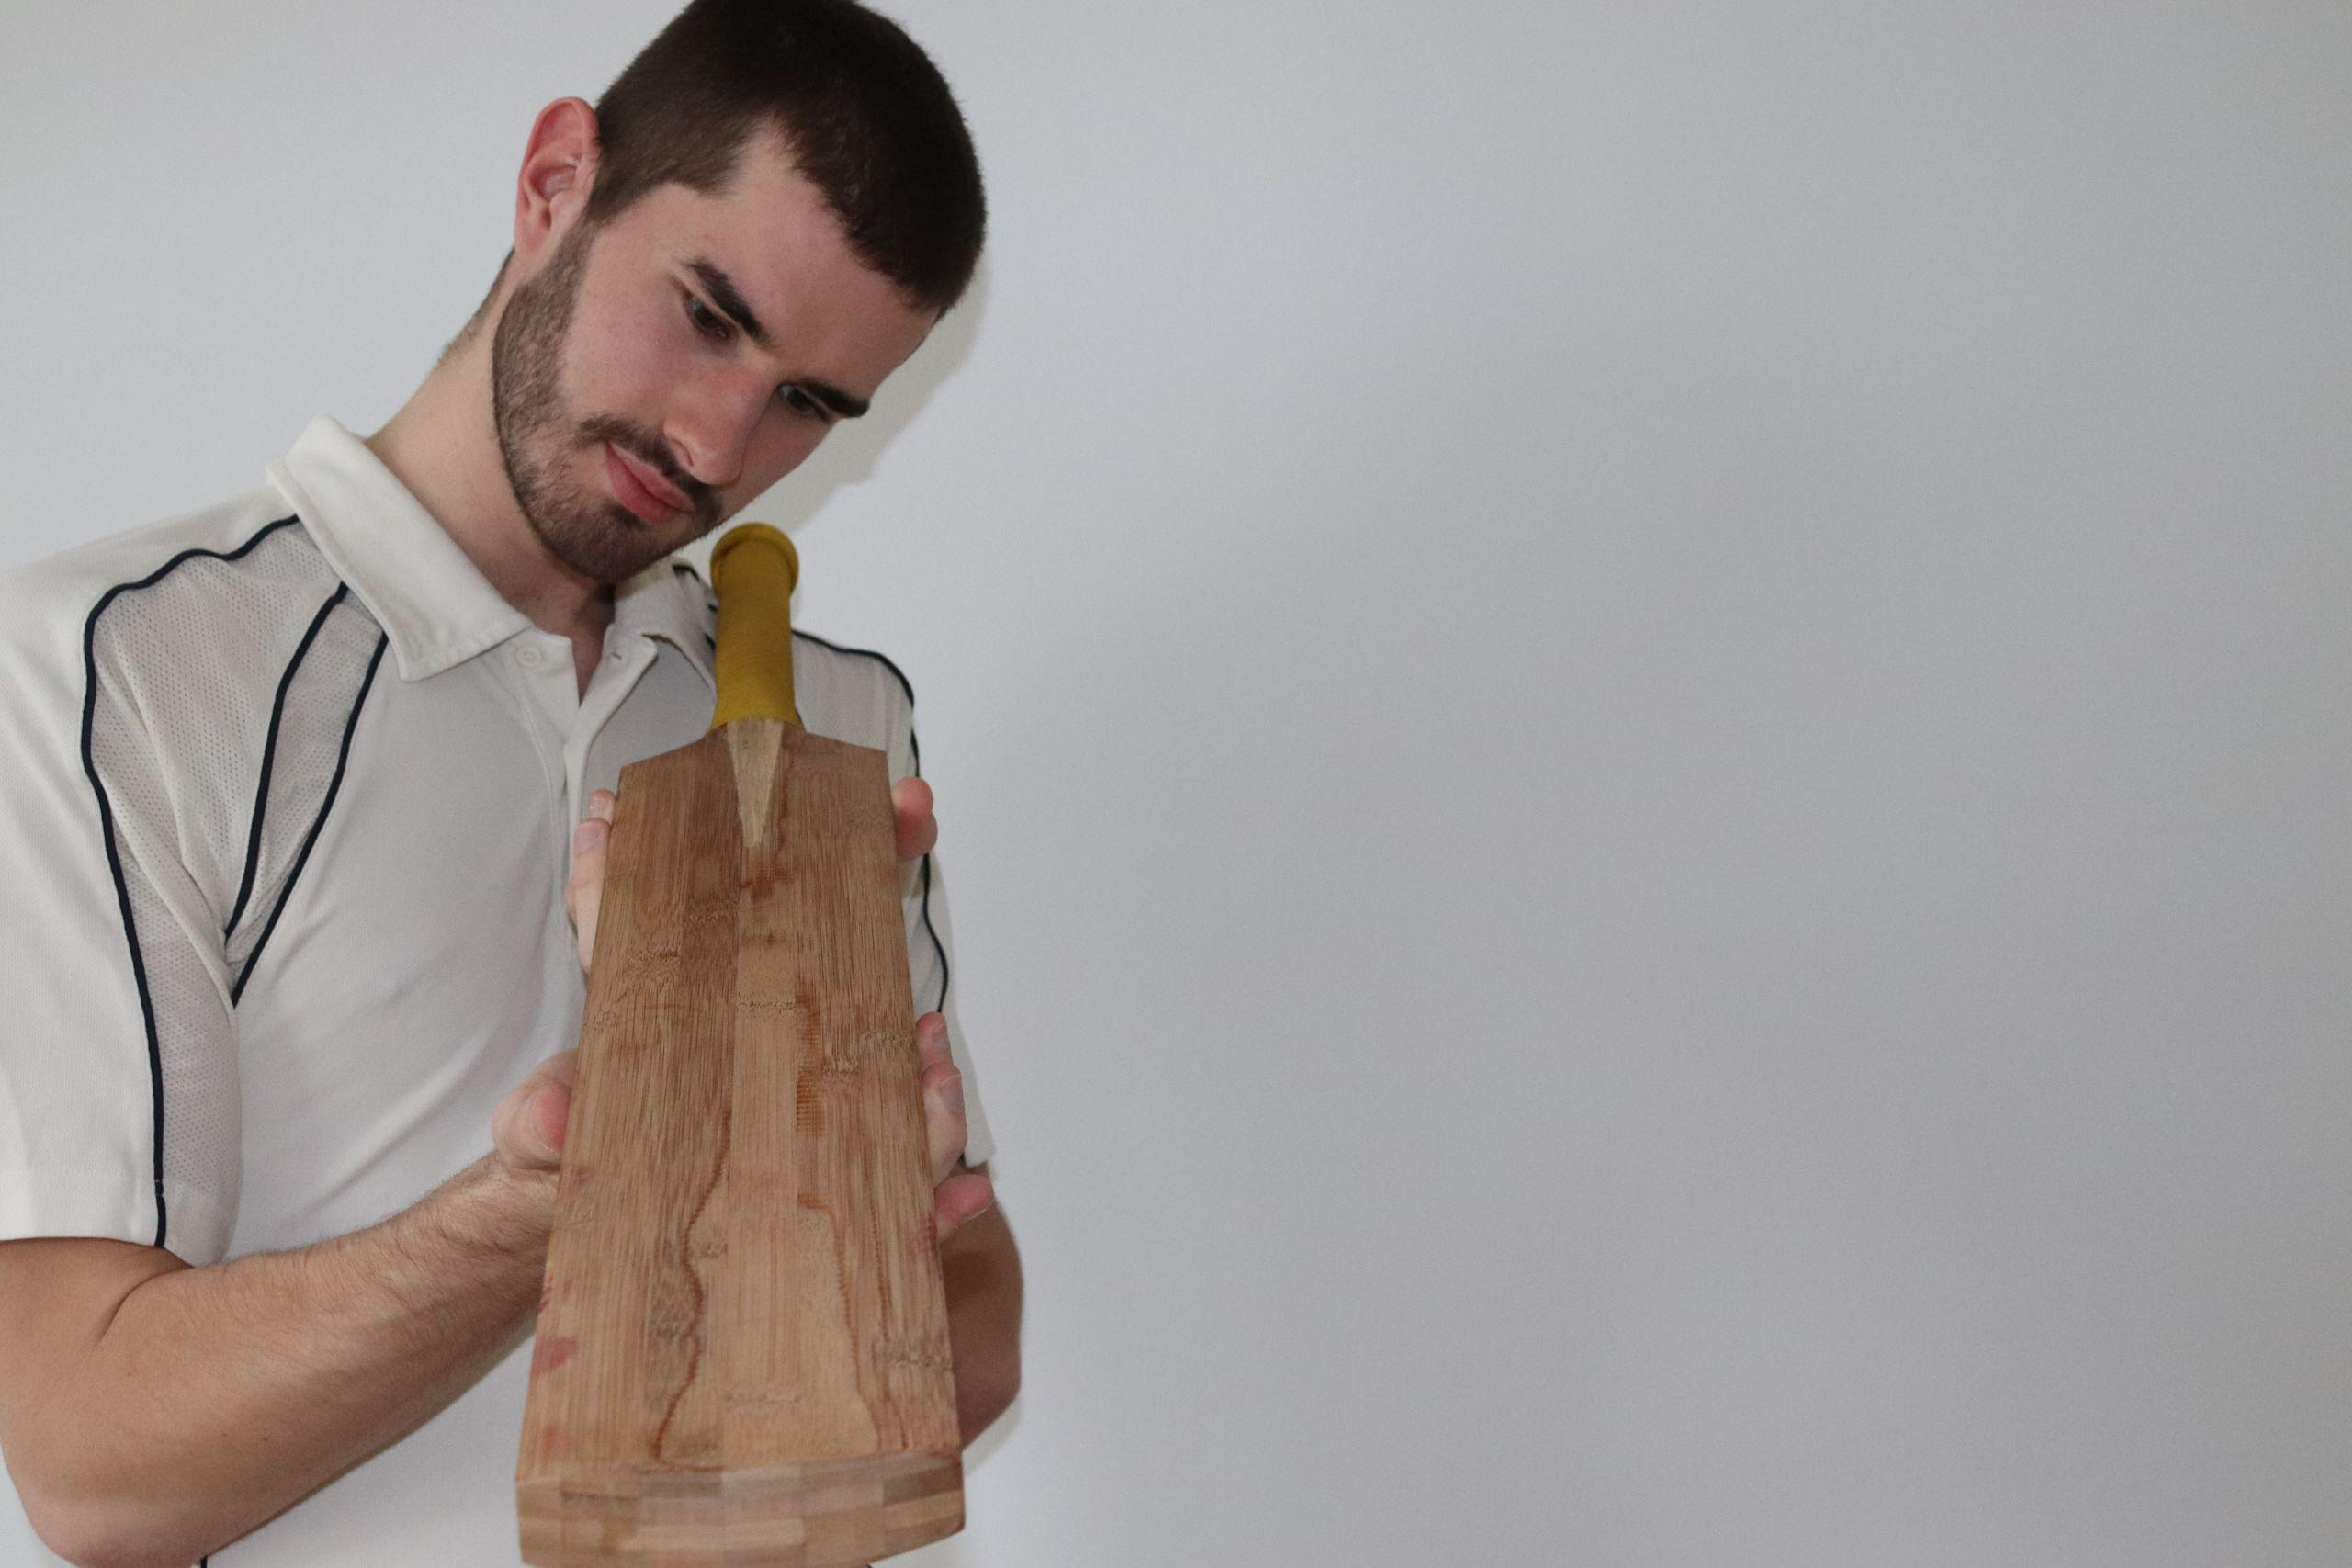 The Centre for Natural Material Innovation's research on the potential use of bamboo for cricket bats has been featured on the Cambridge University website